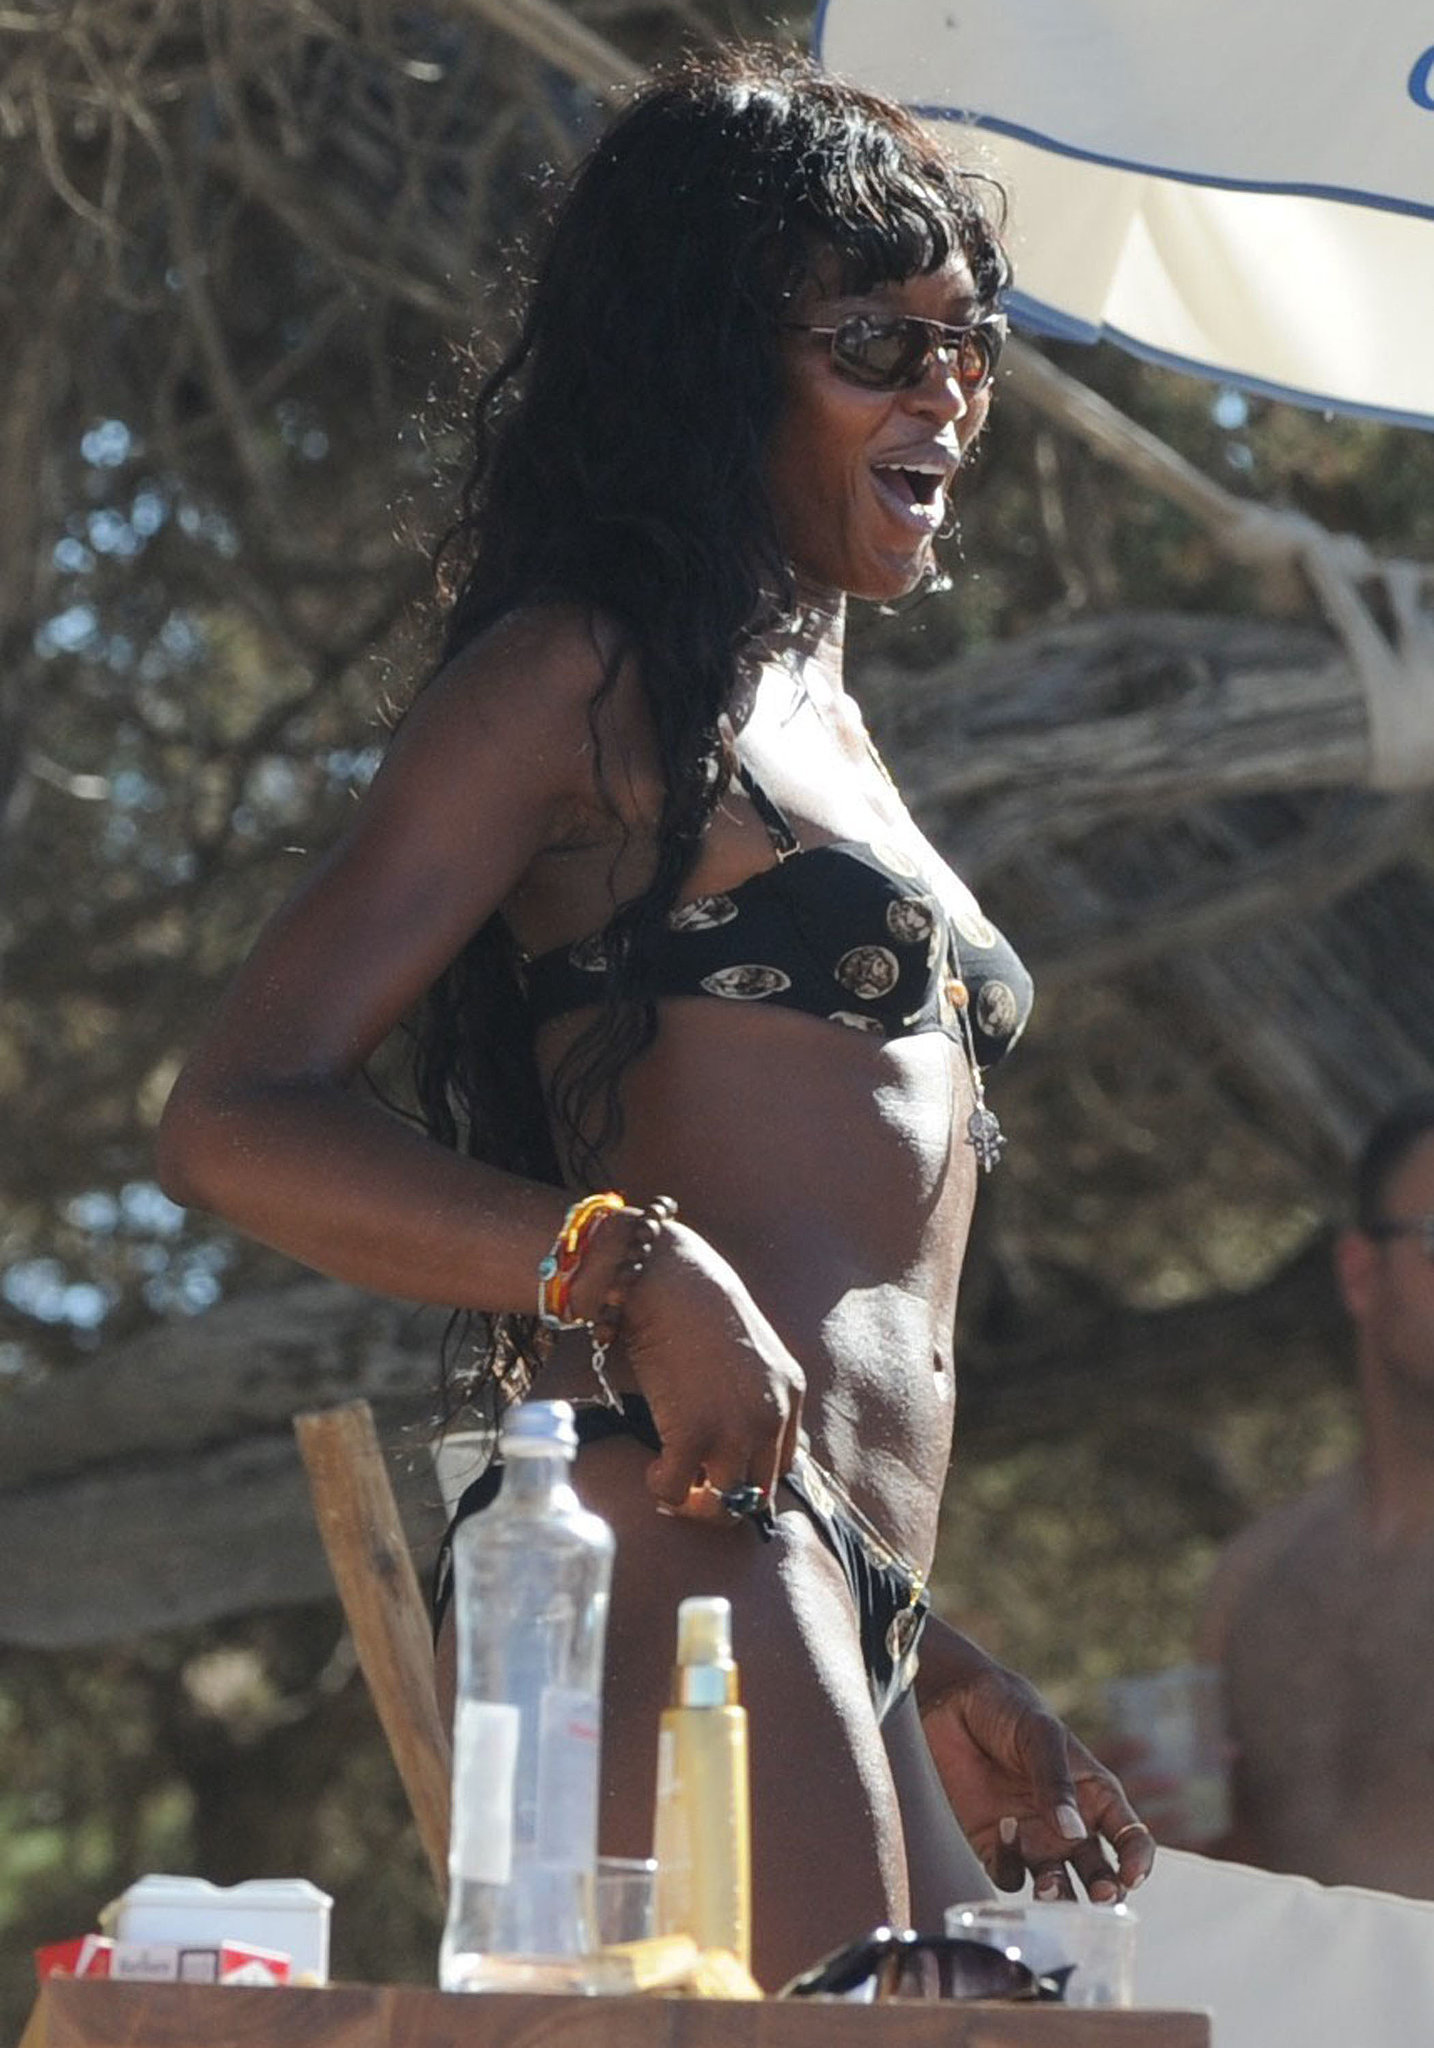 Kate Moss and Naomi Campbell's Vacation Snaps Could Be a Vogue Spread